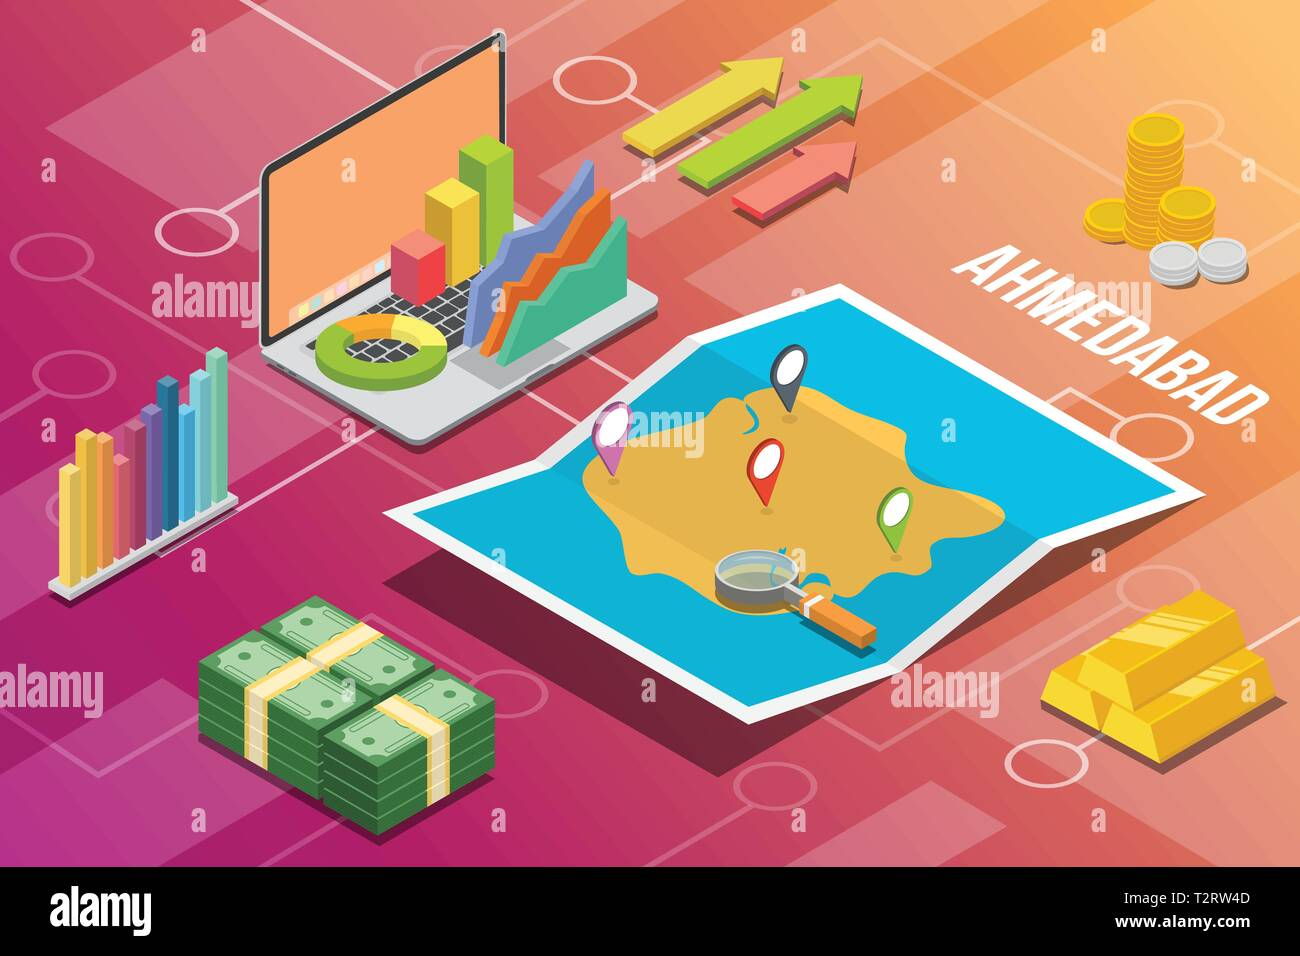 ahmedabad city isometric financial economy condition concept for describe cities growth expand - vector illustration - Stock Vector